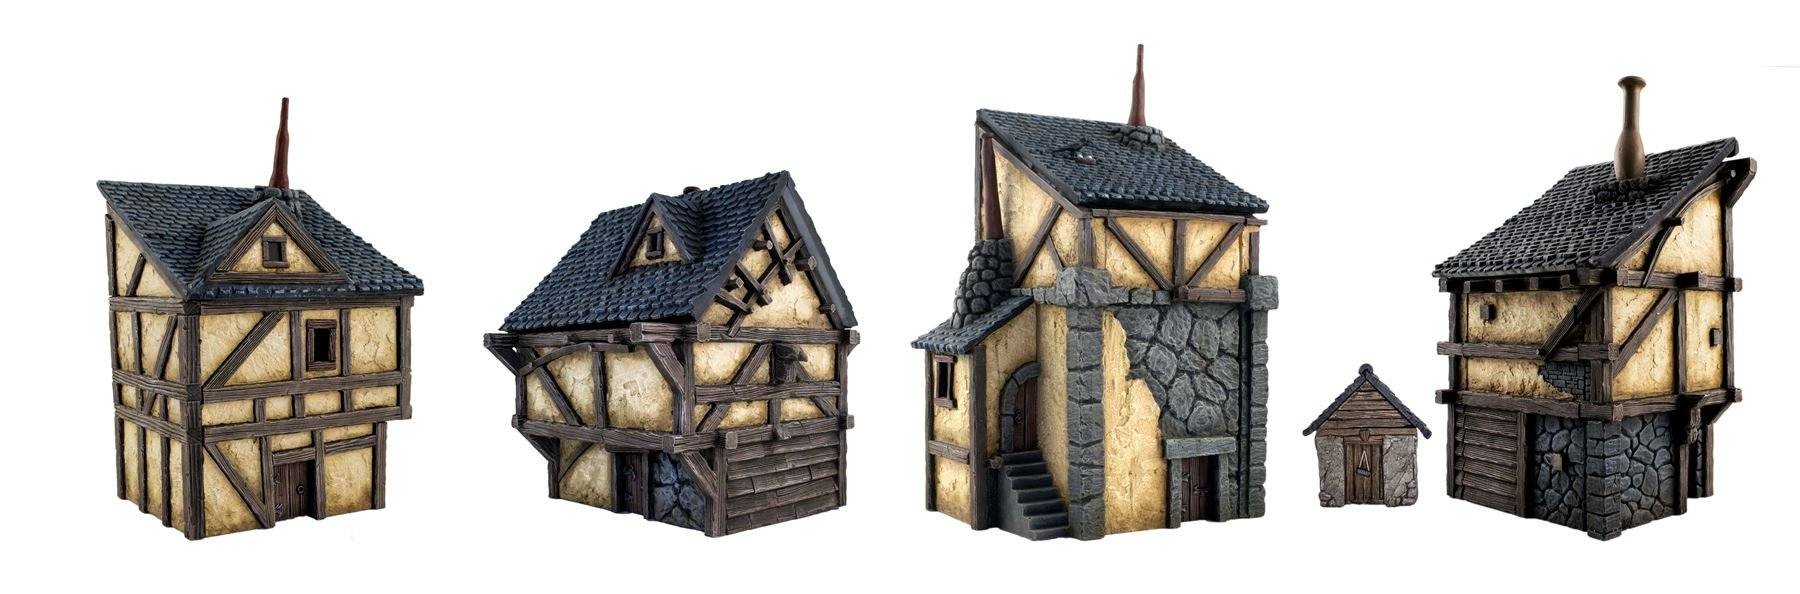 Fantasy Houses -Set of 4 by WWG -Medieval Wargame Scenery & Terrain